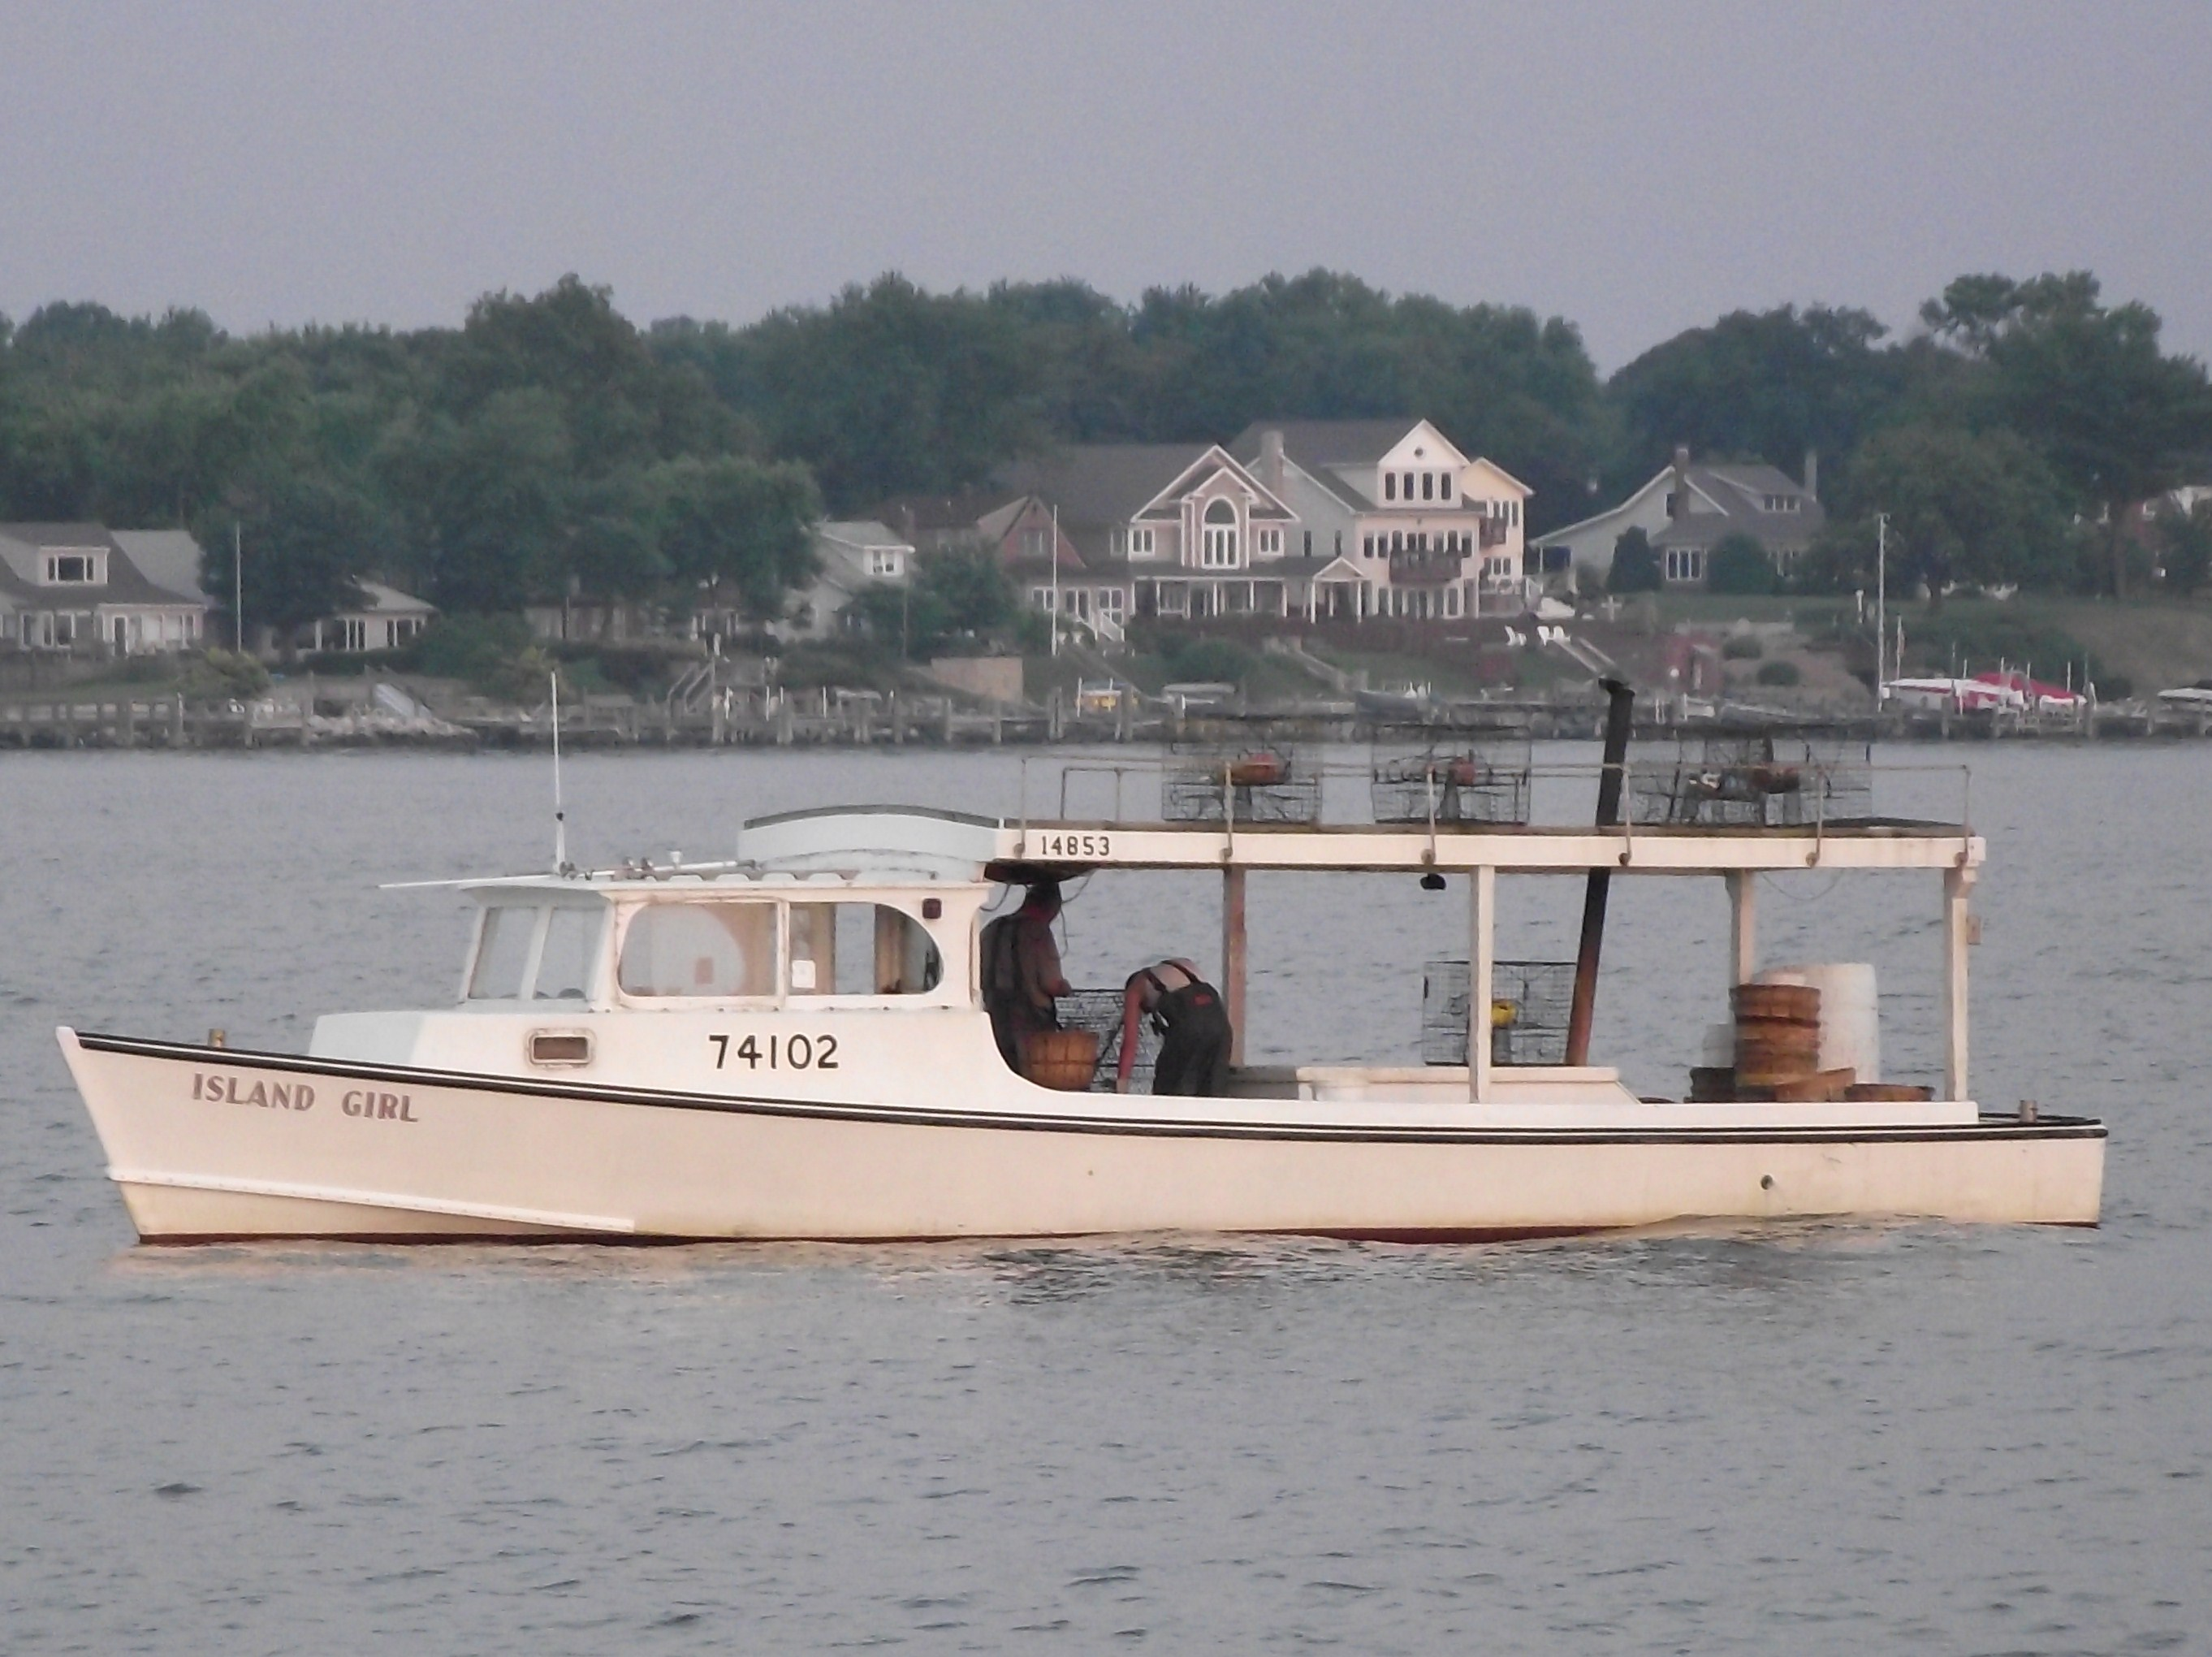 ... for sale md, plywood catamaran plans free, lobster boat plans free